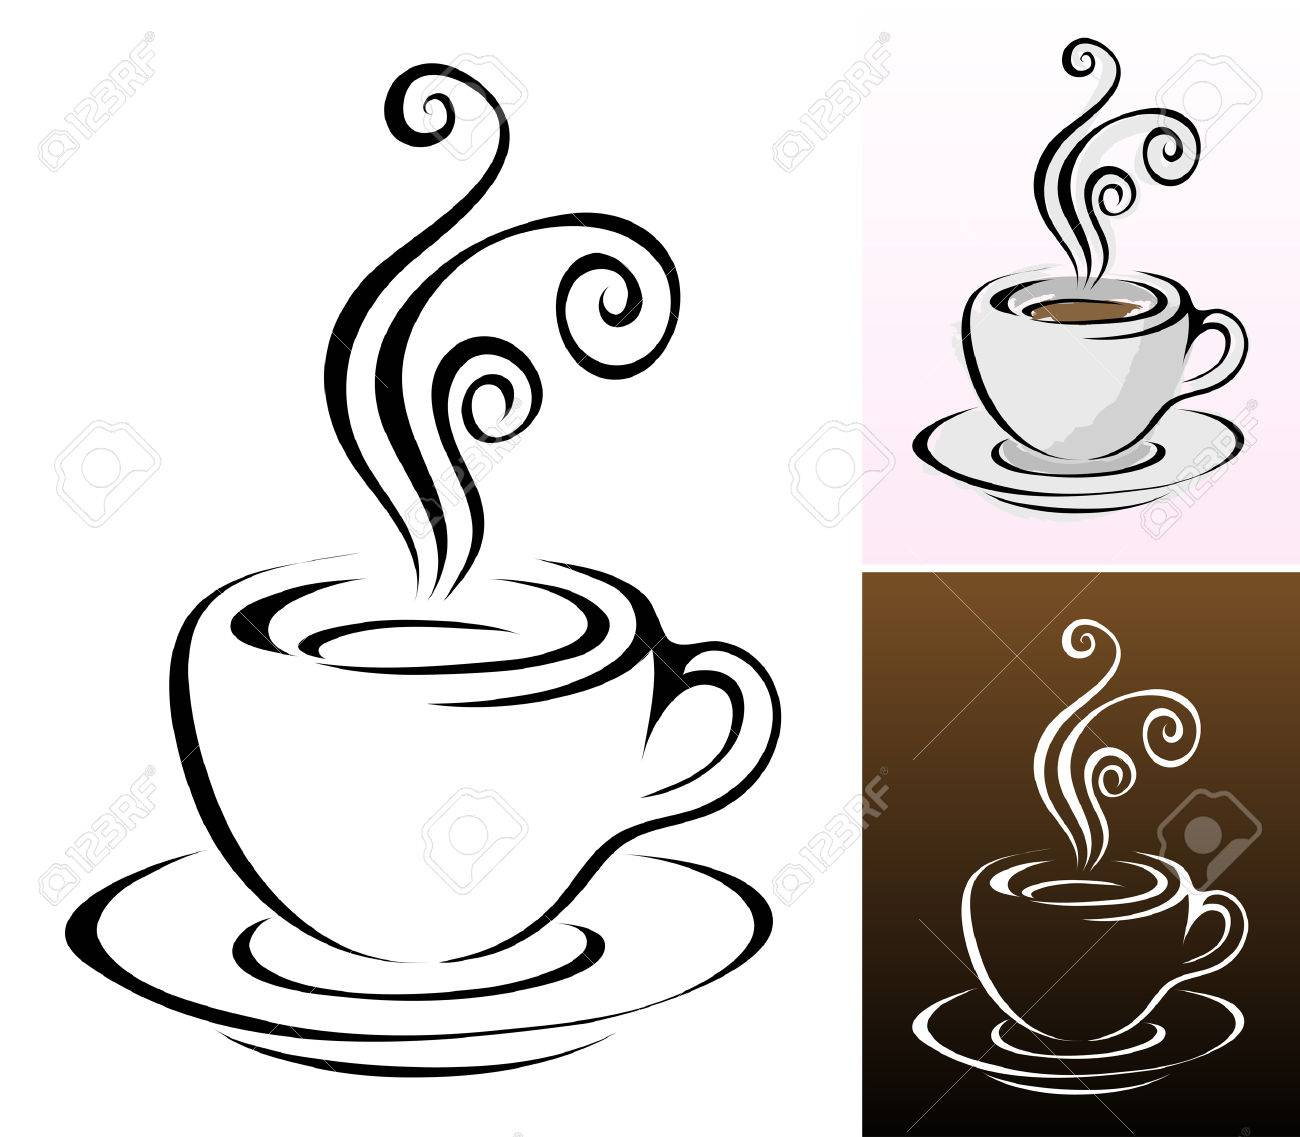 coffee cups icons in different colours & styles Stock Vector - 4206807